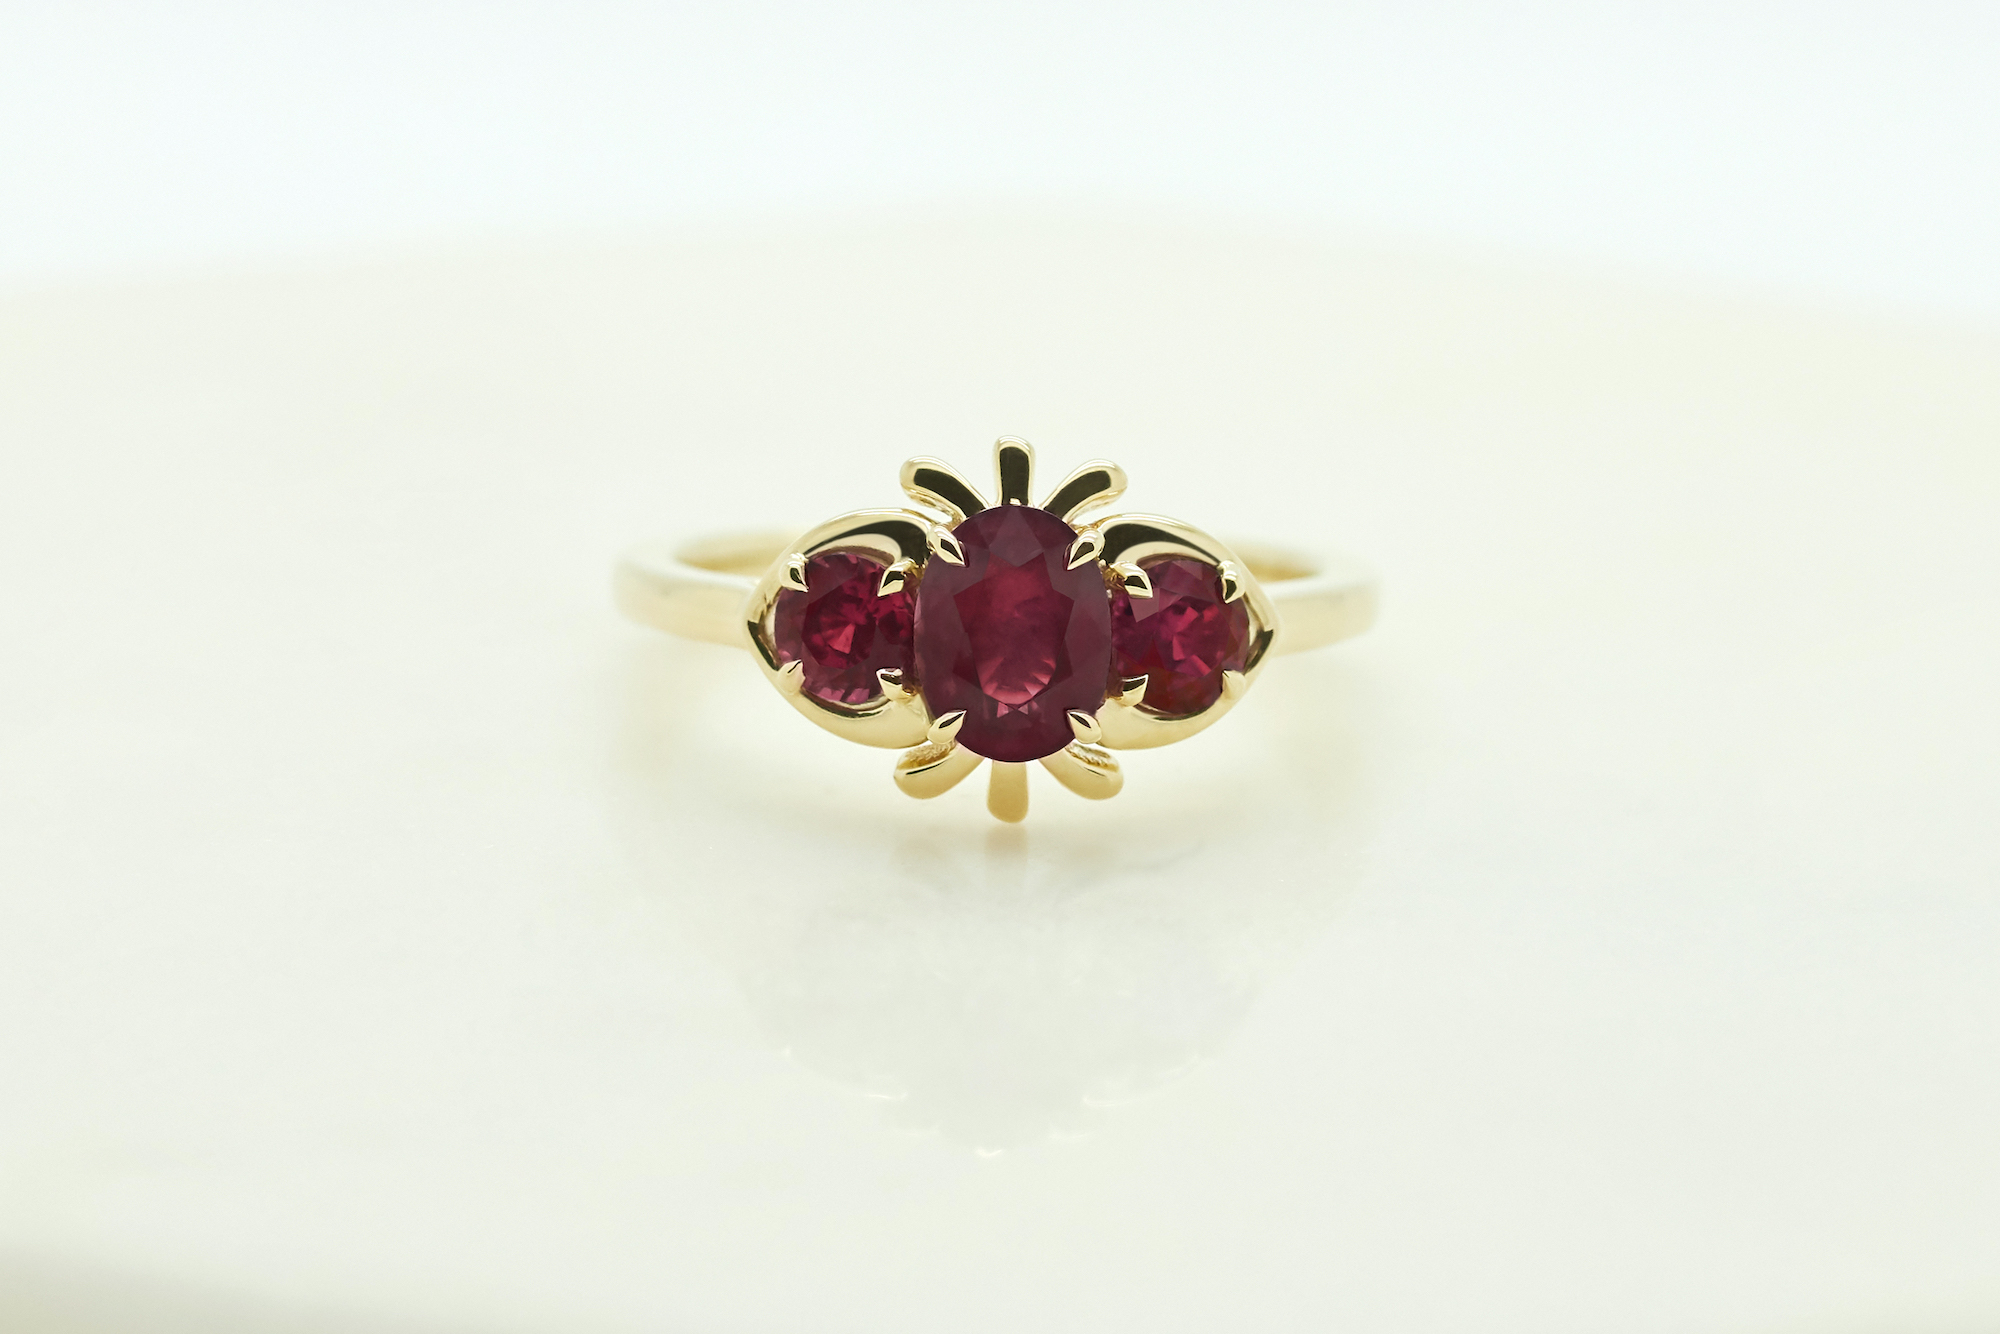 Ruby trilogy in yellow gold